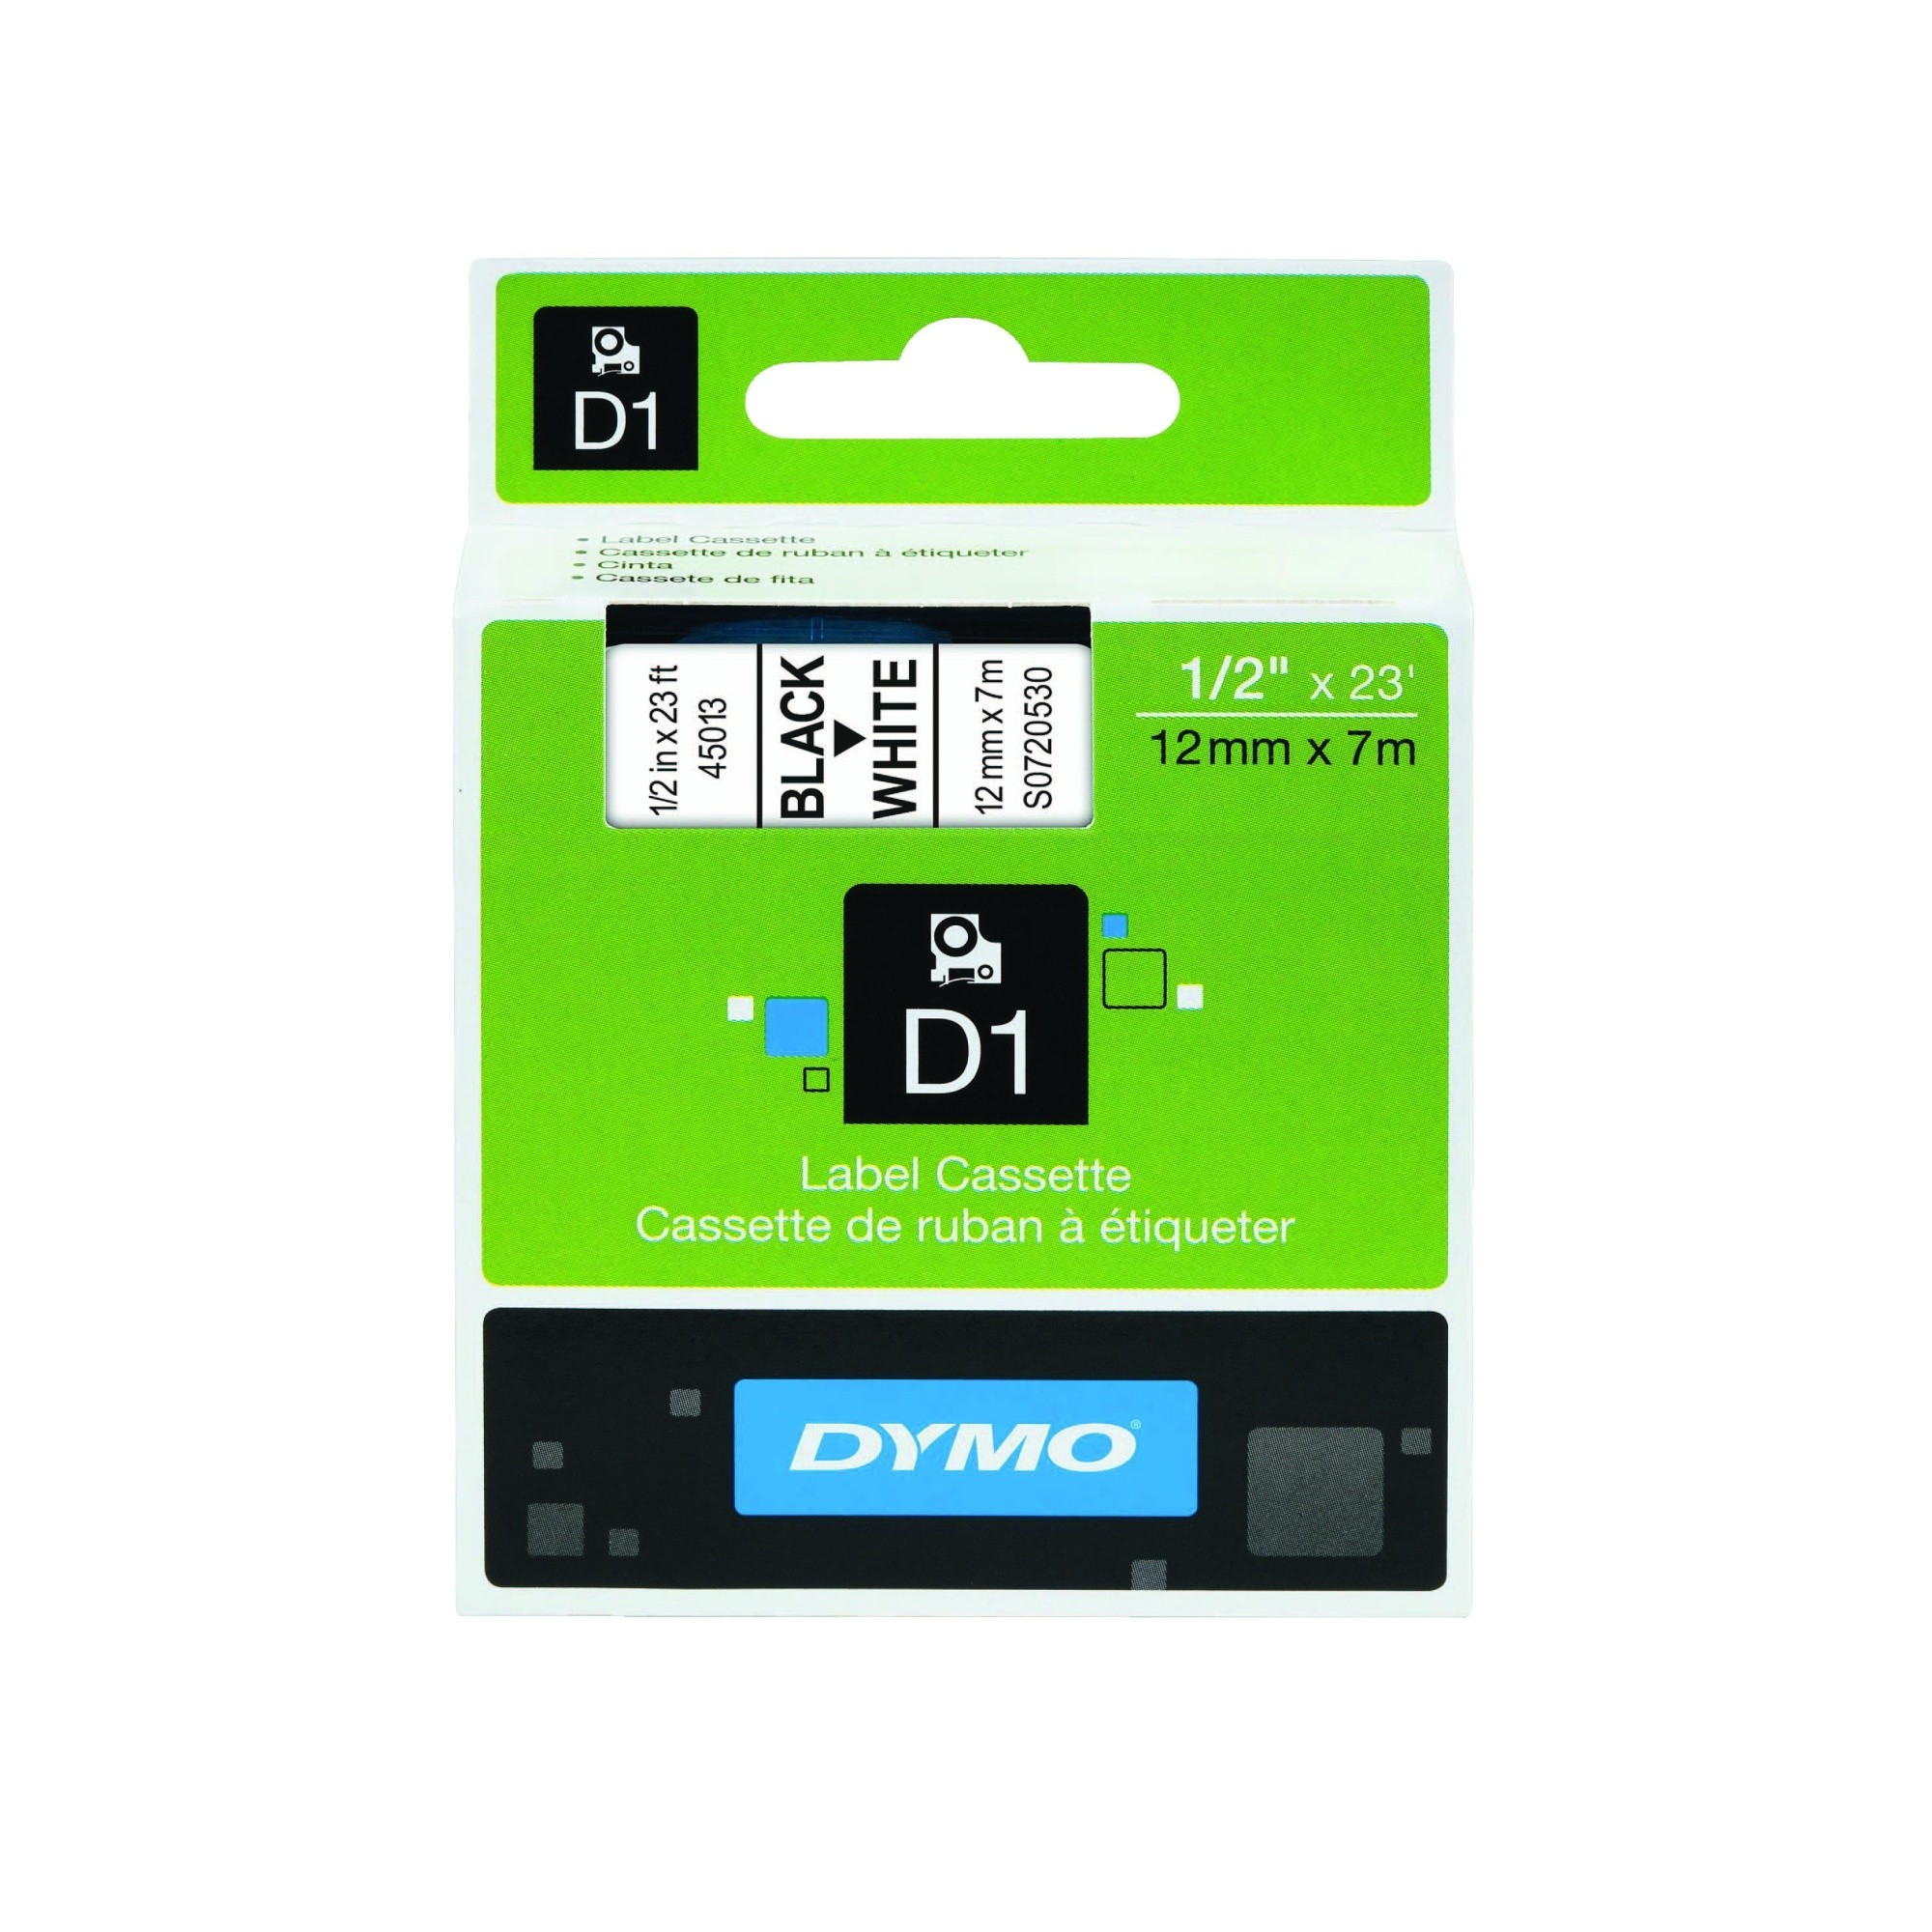 DYMO D1 Tape 12mm X 7m Black On White Labels Removable